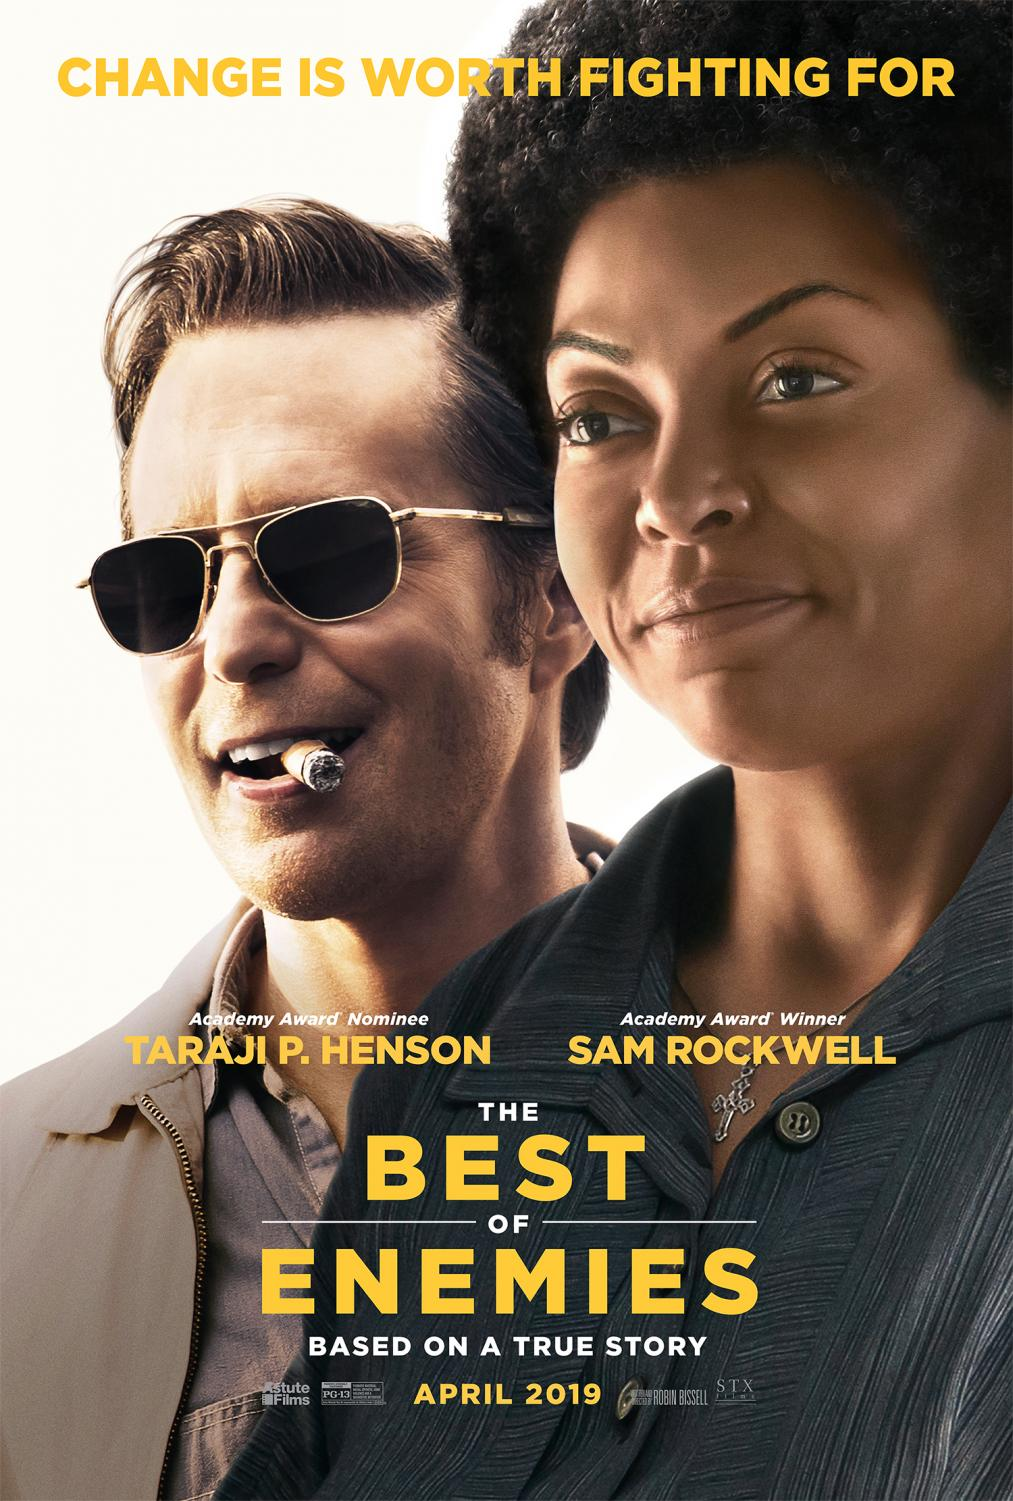 Promotional Poster for the Film The Best of Enemies.